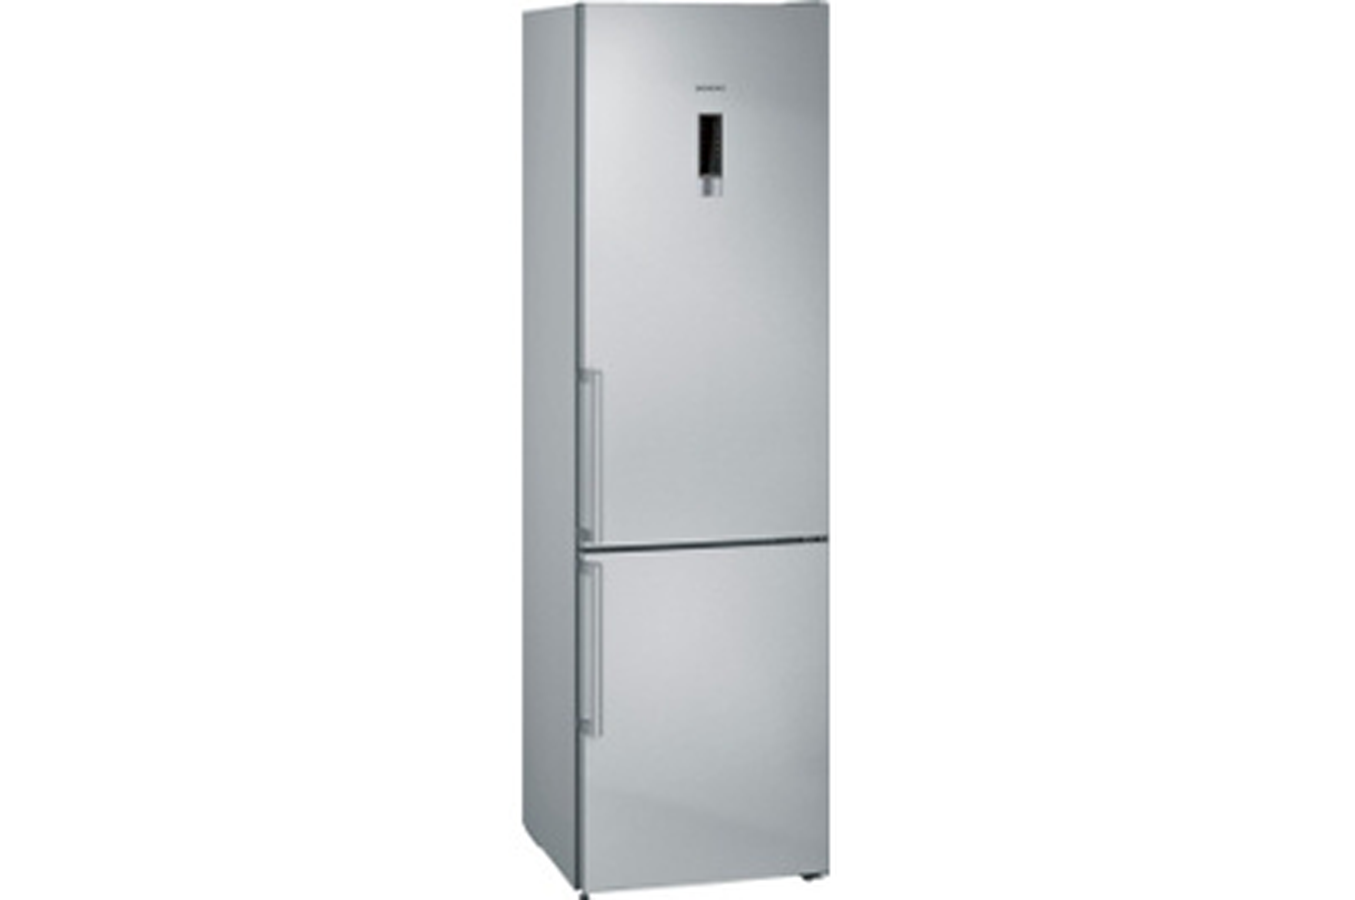 refrigerateur congelateur en bas siemens kg39nxi46. Black Bedroom Furniture Sets. Home Design Ideas